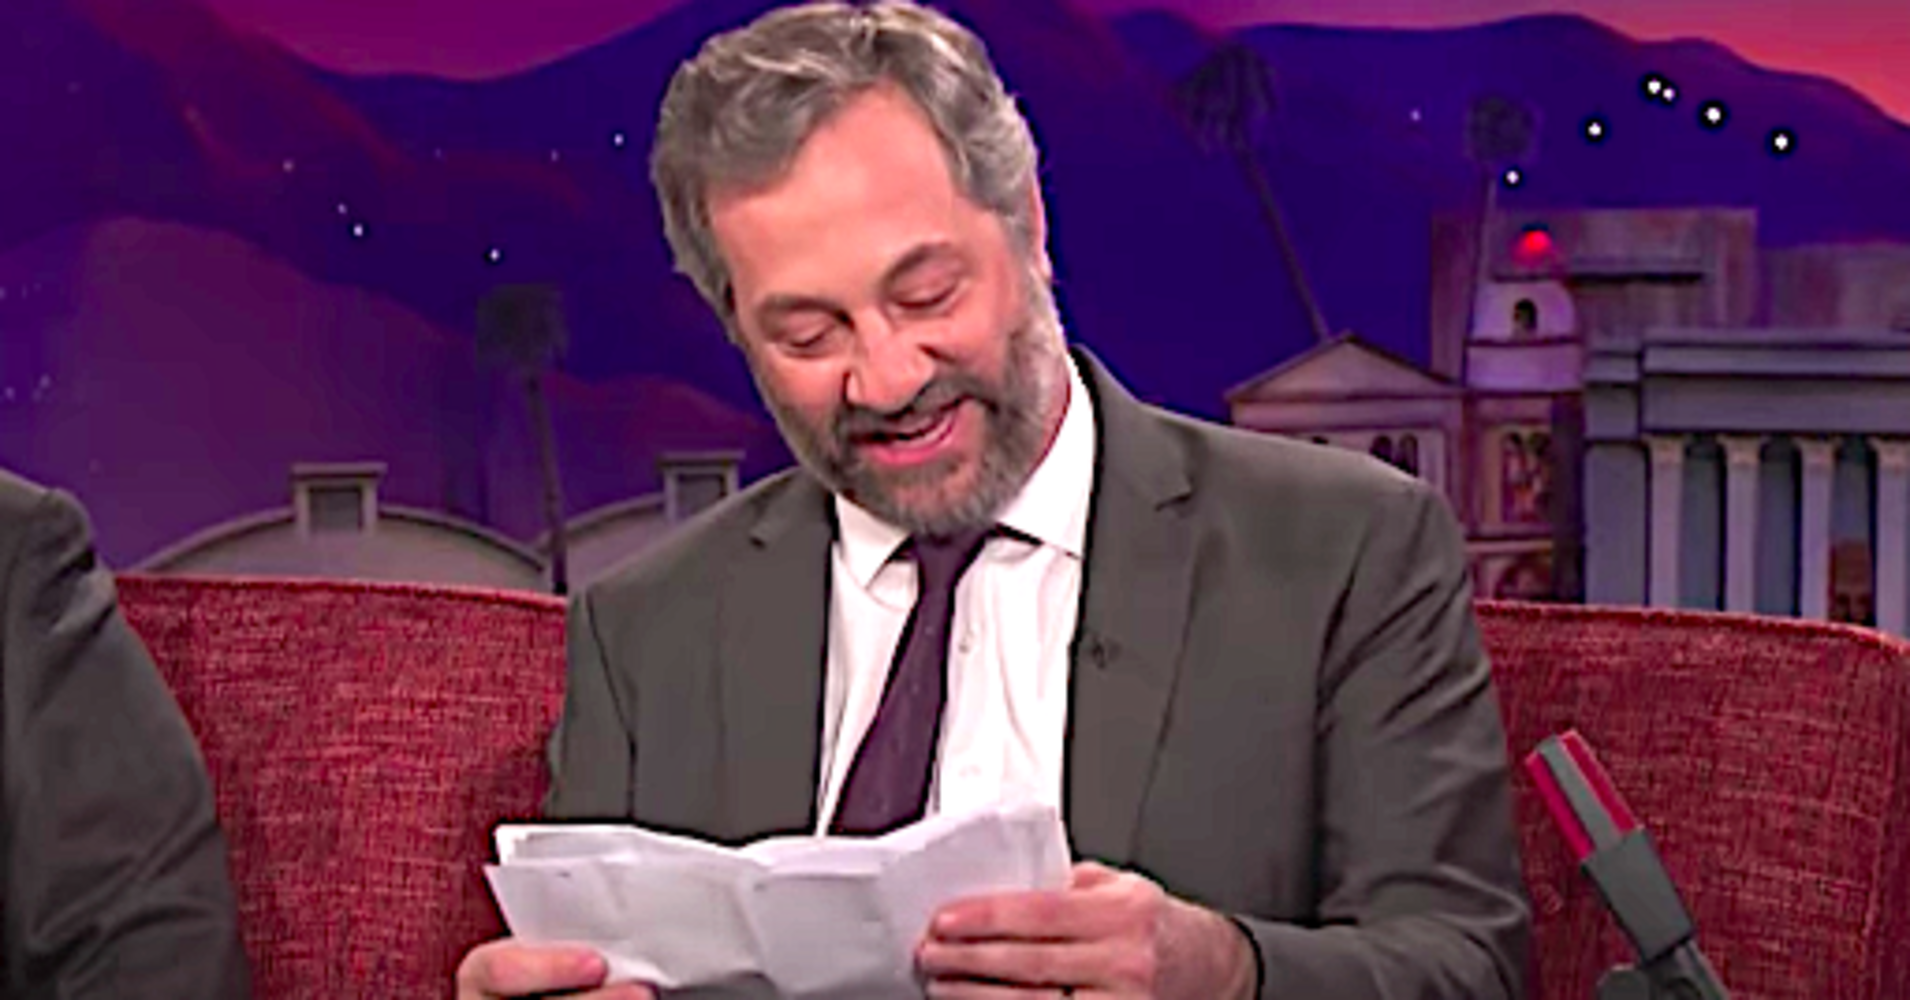 Judd Apatow Reads Garry Shandling's Hilarious Diary On 'Conan'